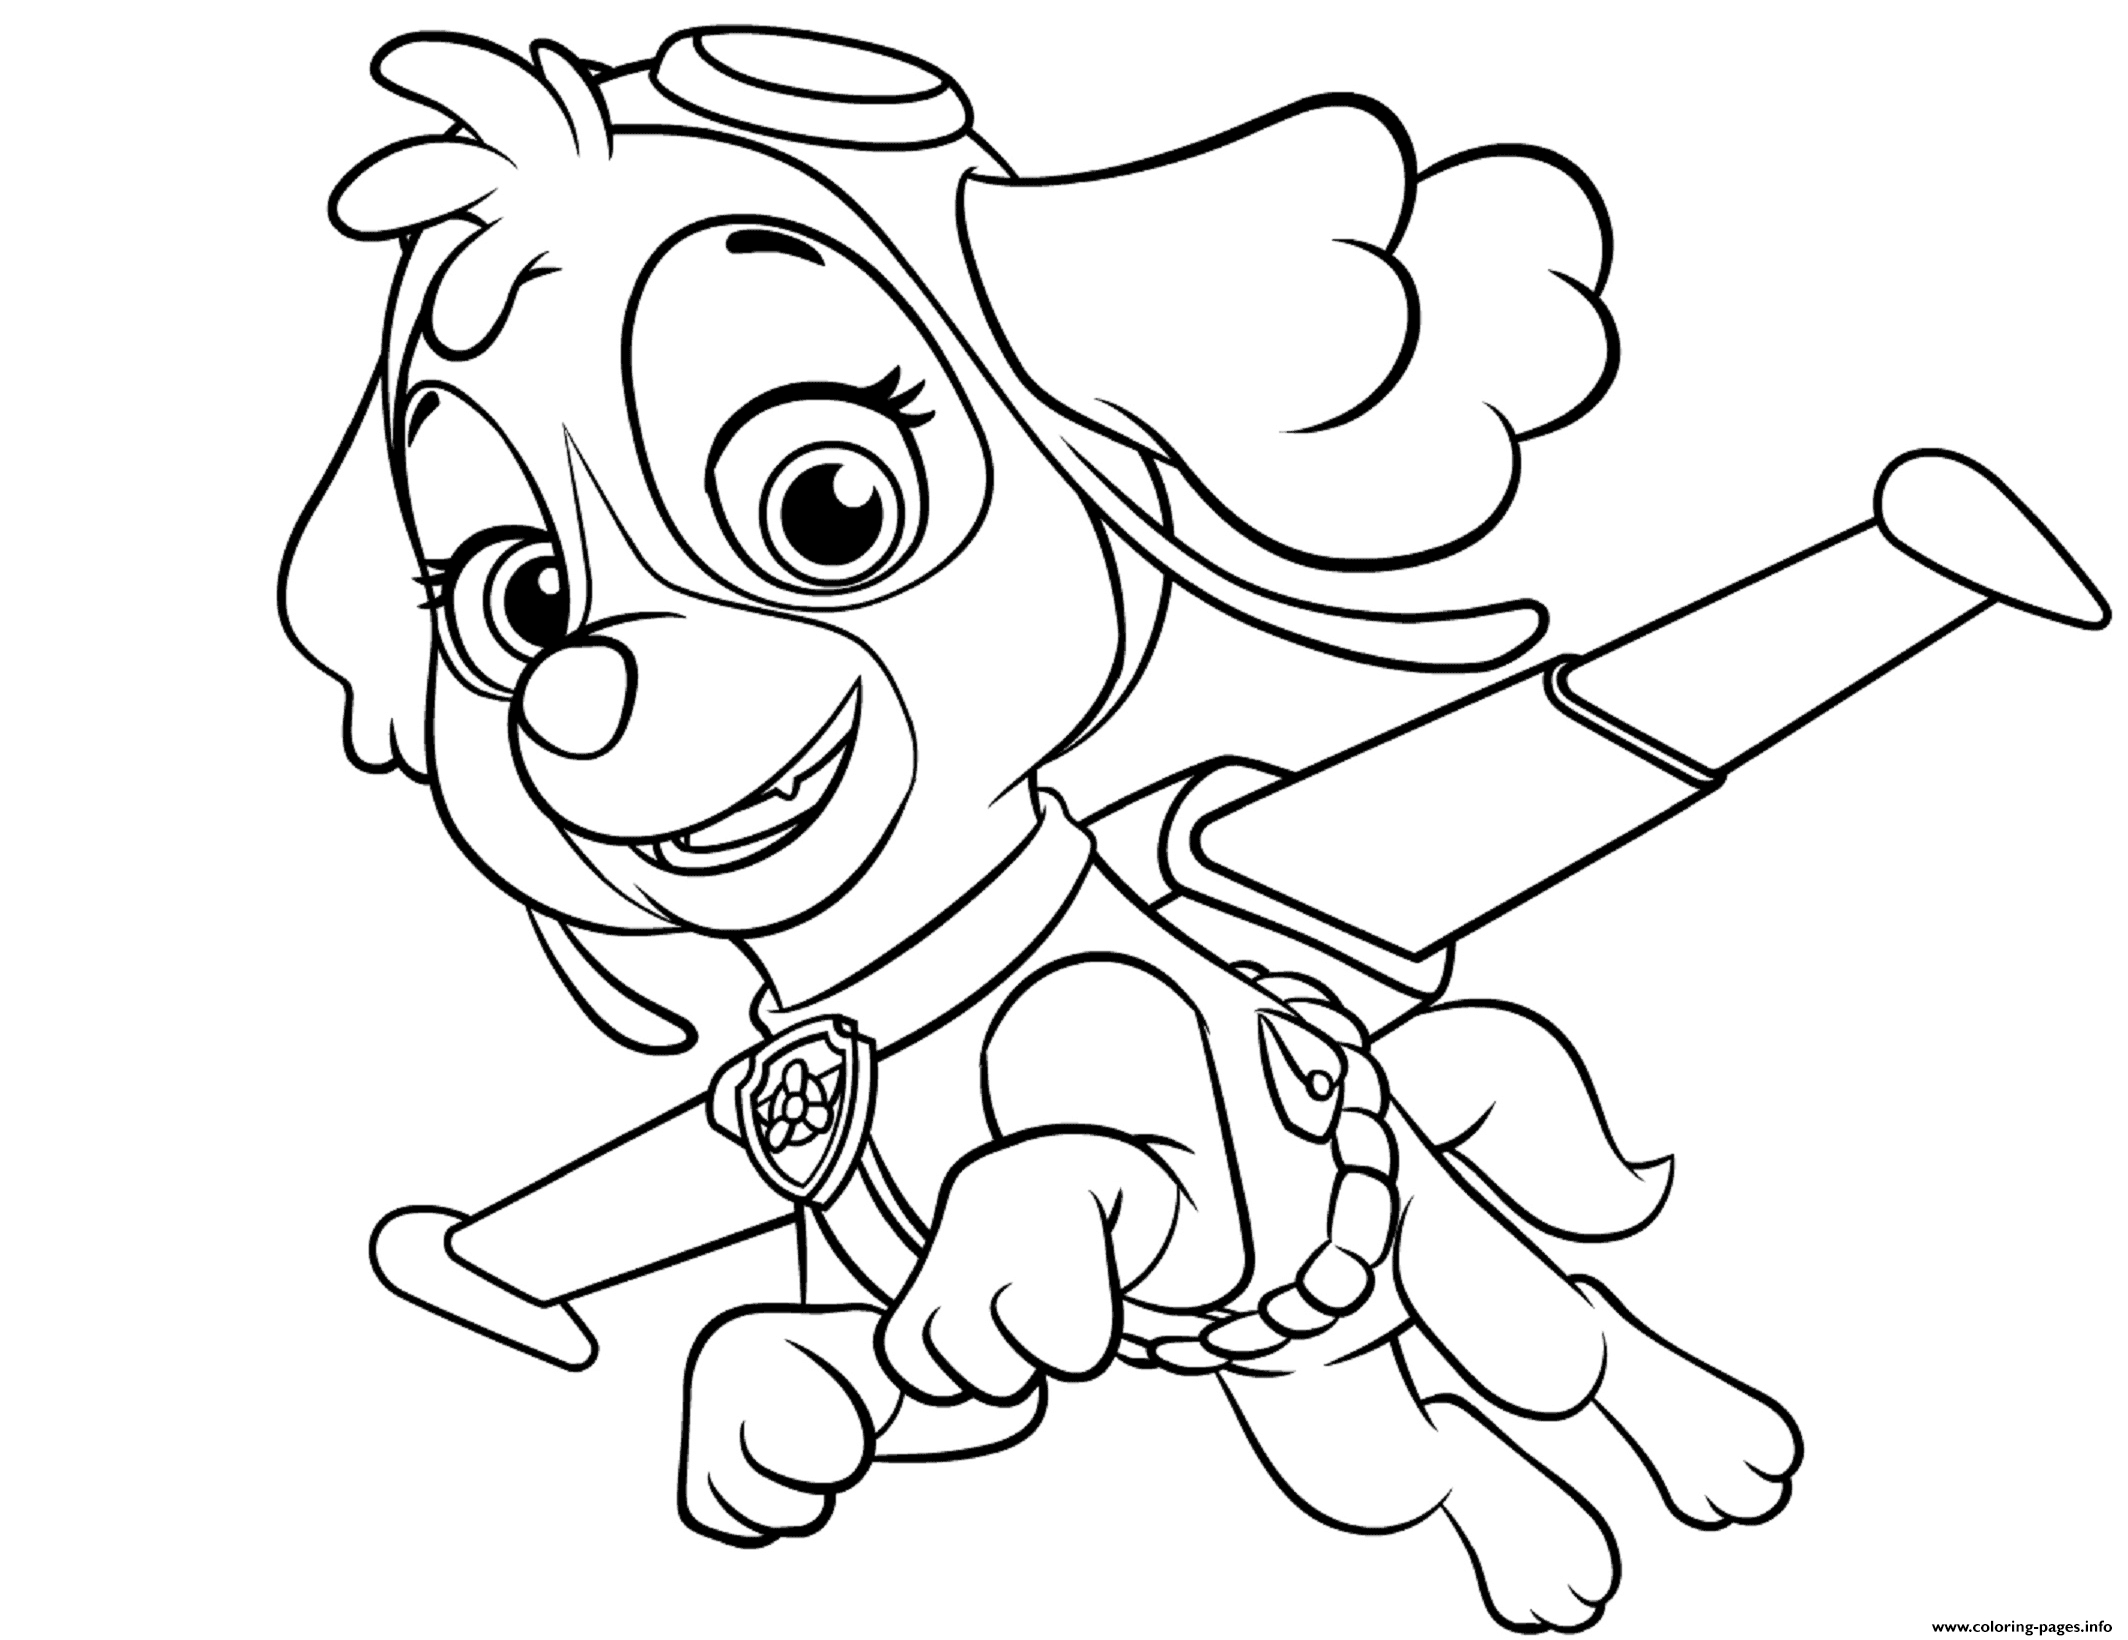 paw patrol coloring pages sky paw patrol coloring pages printable free coloring sheets pages coloring patrol paw sky